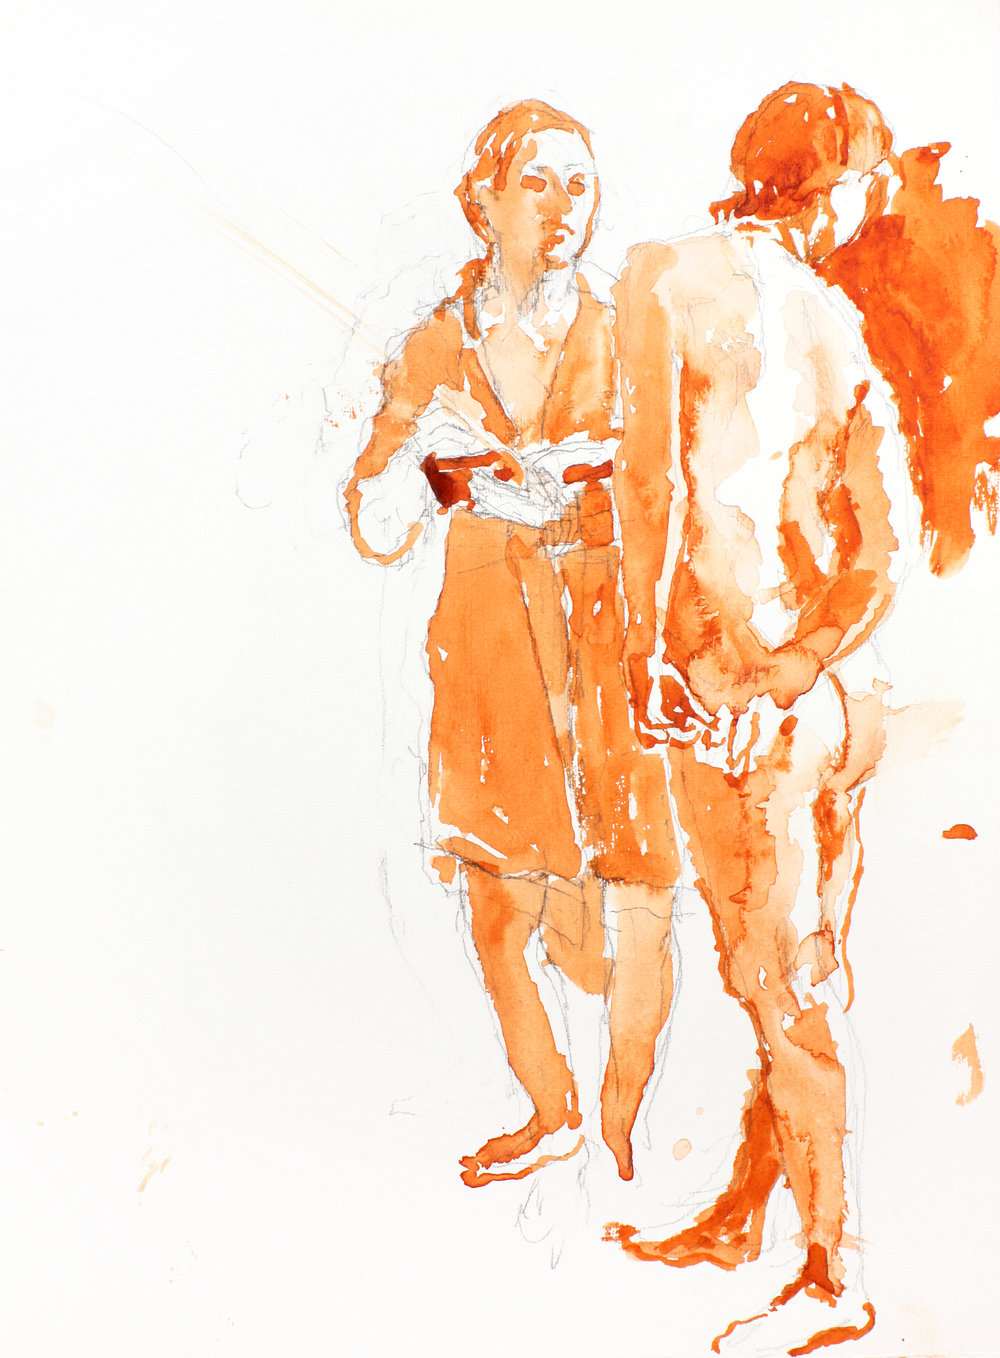 2003_Two_Figures_watercolour_on_pencil_15x11in_WPF225.jpg